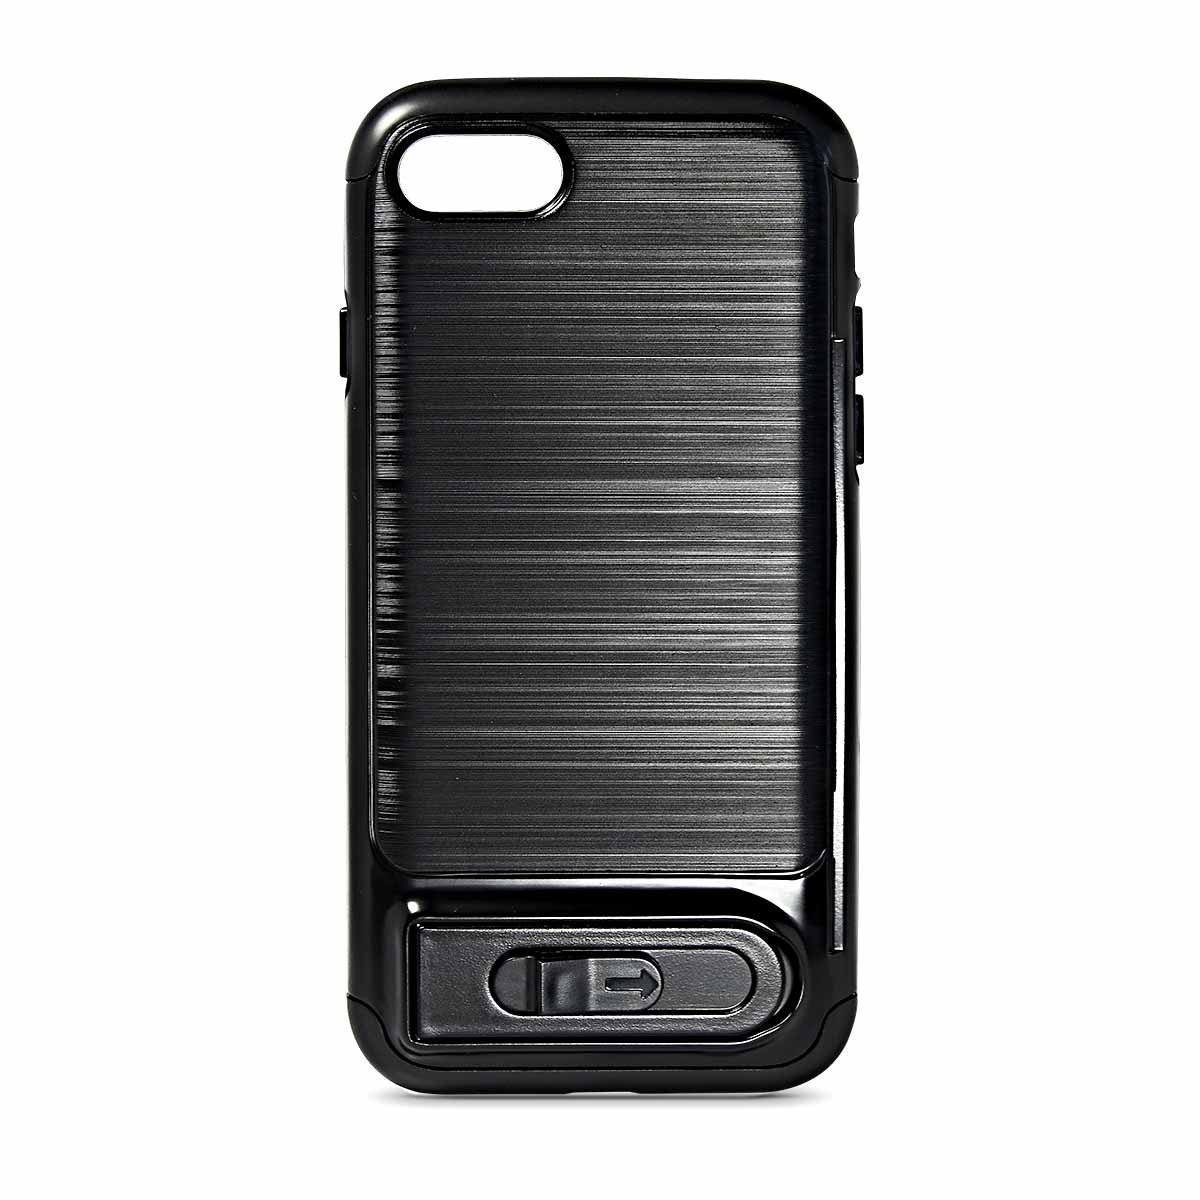 My Card Sliding Case for iPhone 7 /8 - Black